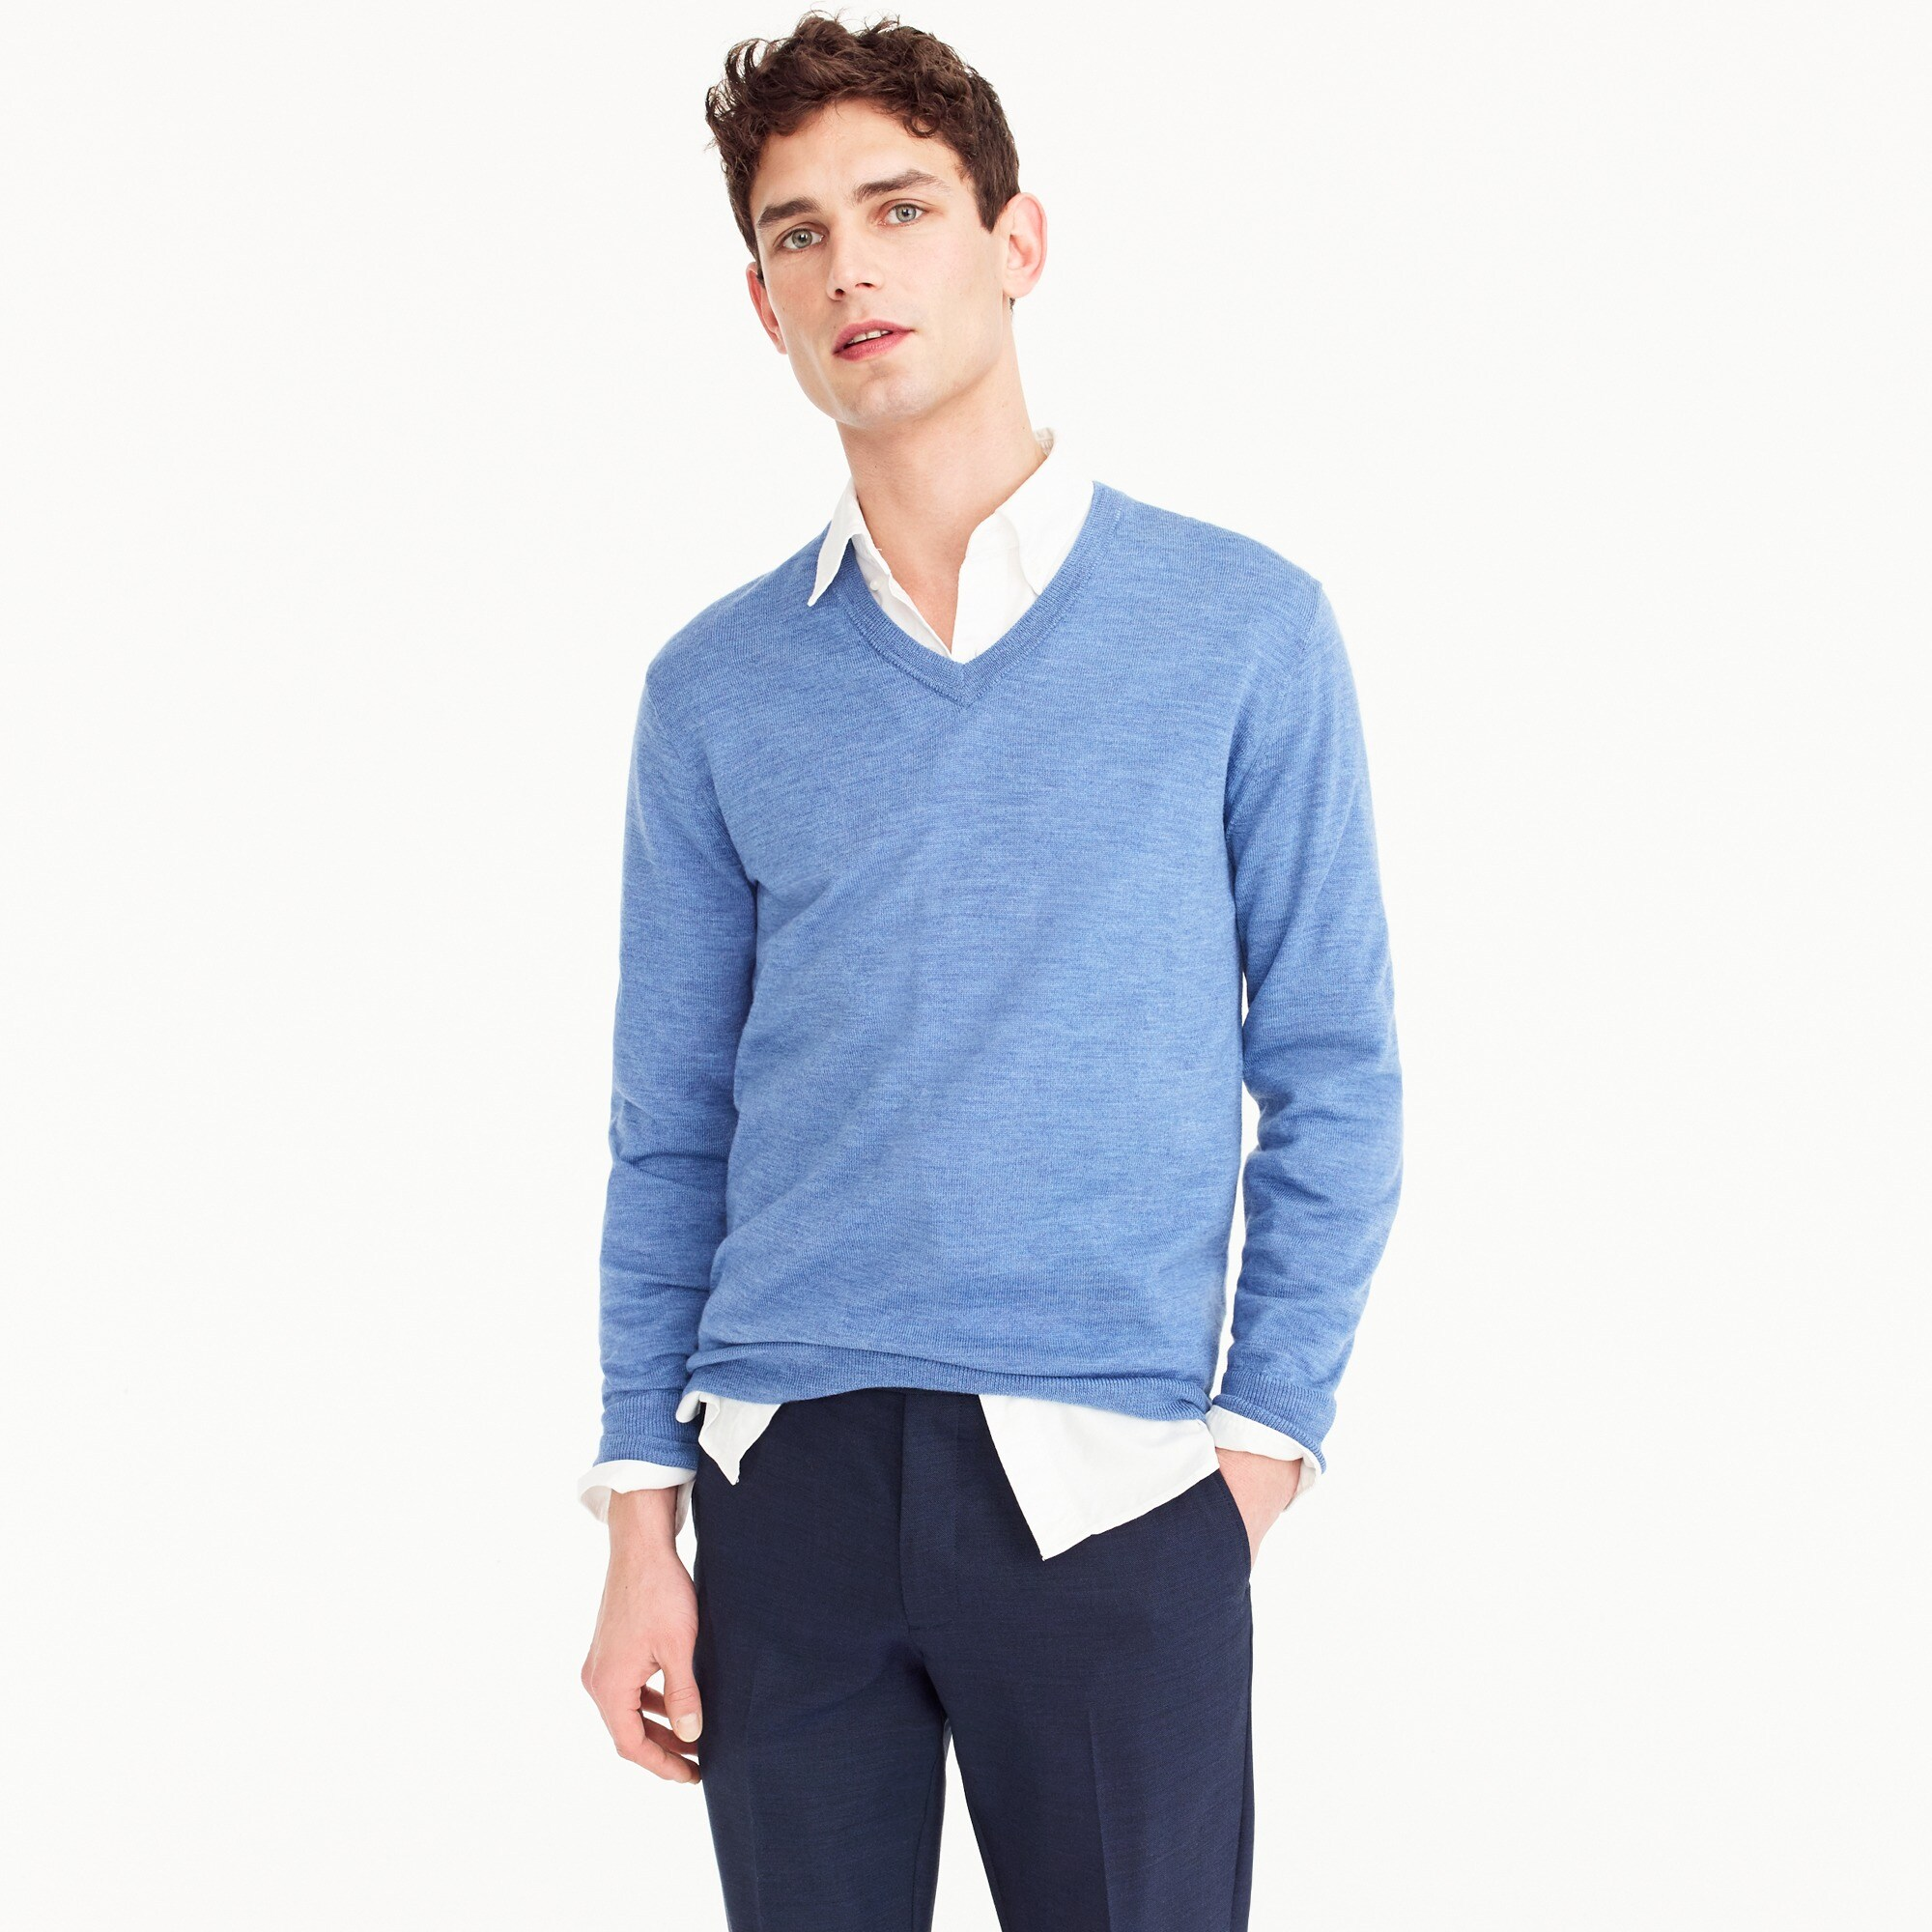 Image 1 for Tall Italian merino wool V-neck sweater